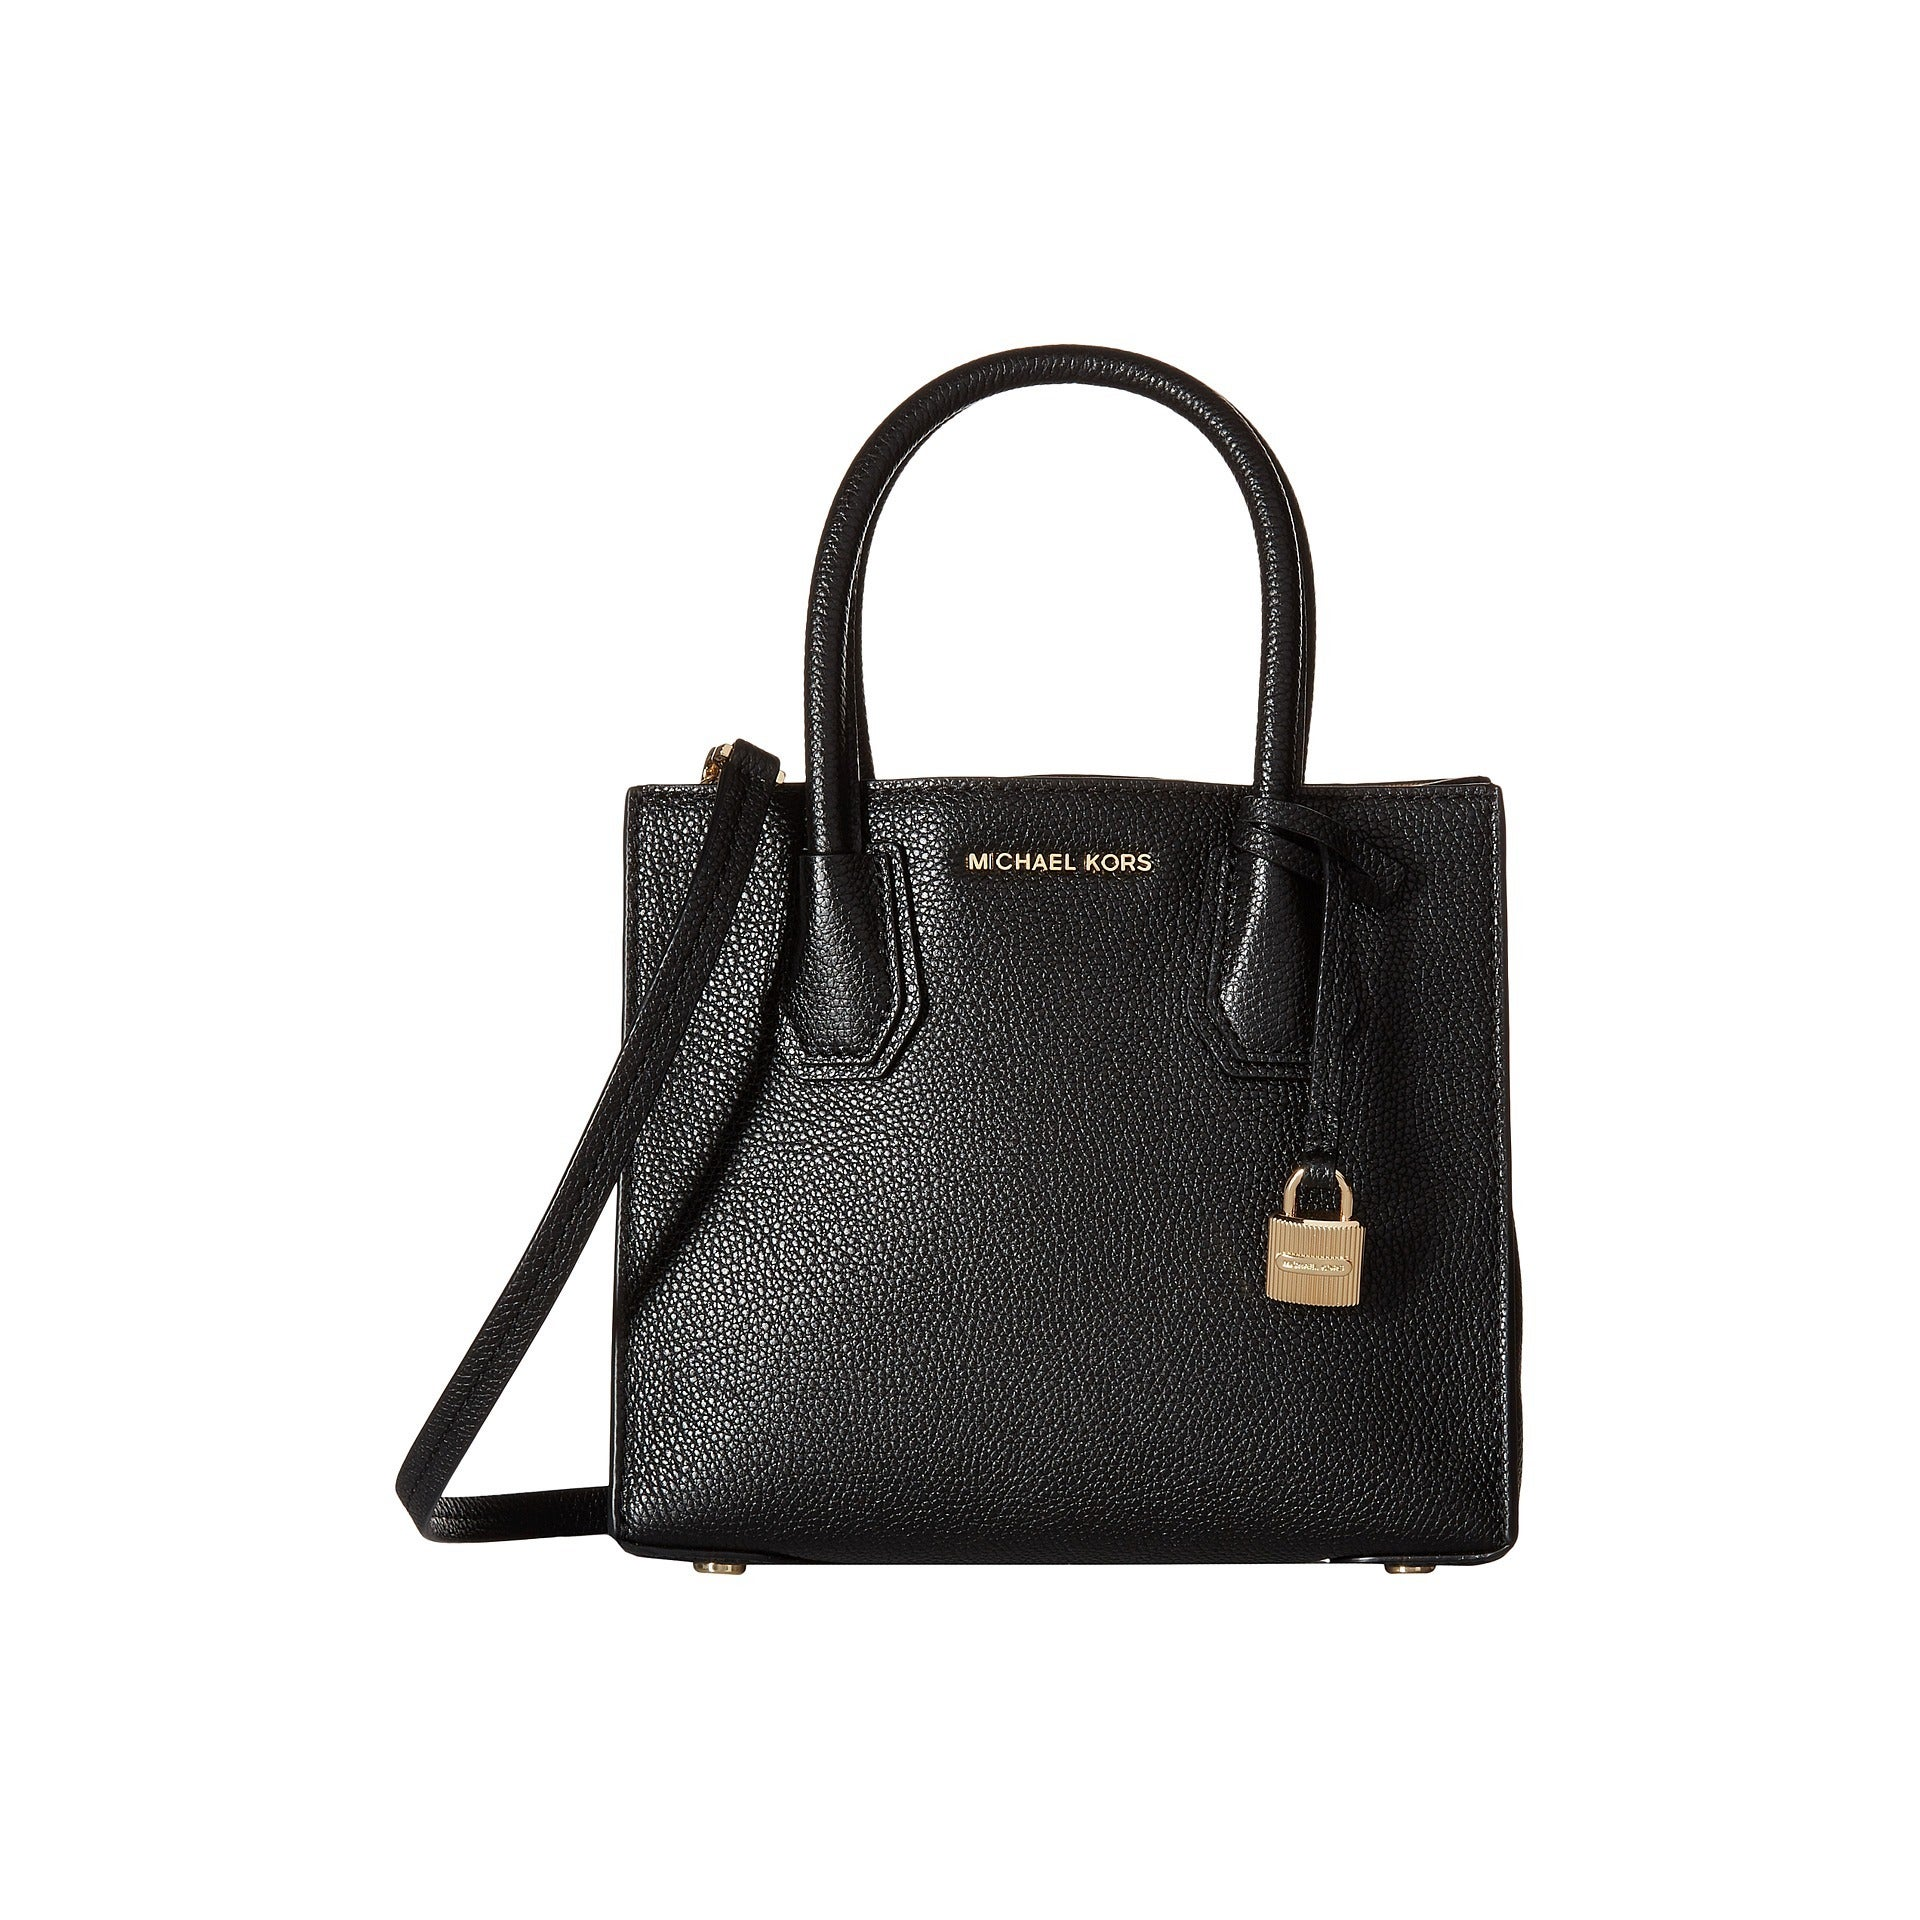 9001715f5fff Shop Michael Kors Mercer Black Leather Medium Crossbody Handbag - On Sale -  Free Shipping Today - Overstock - 12644156